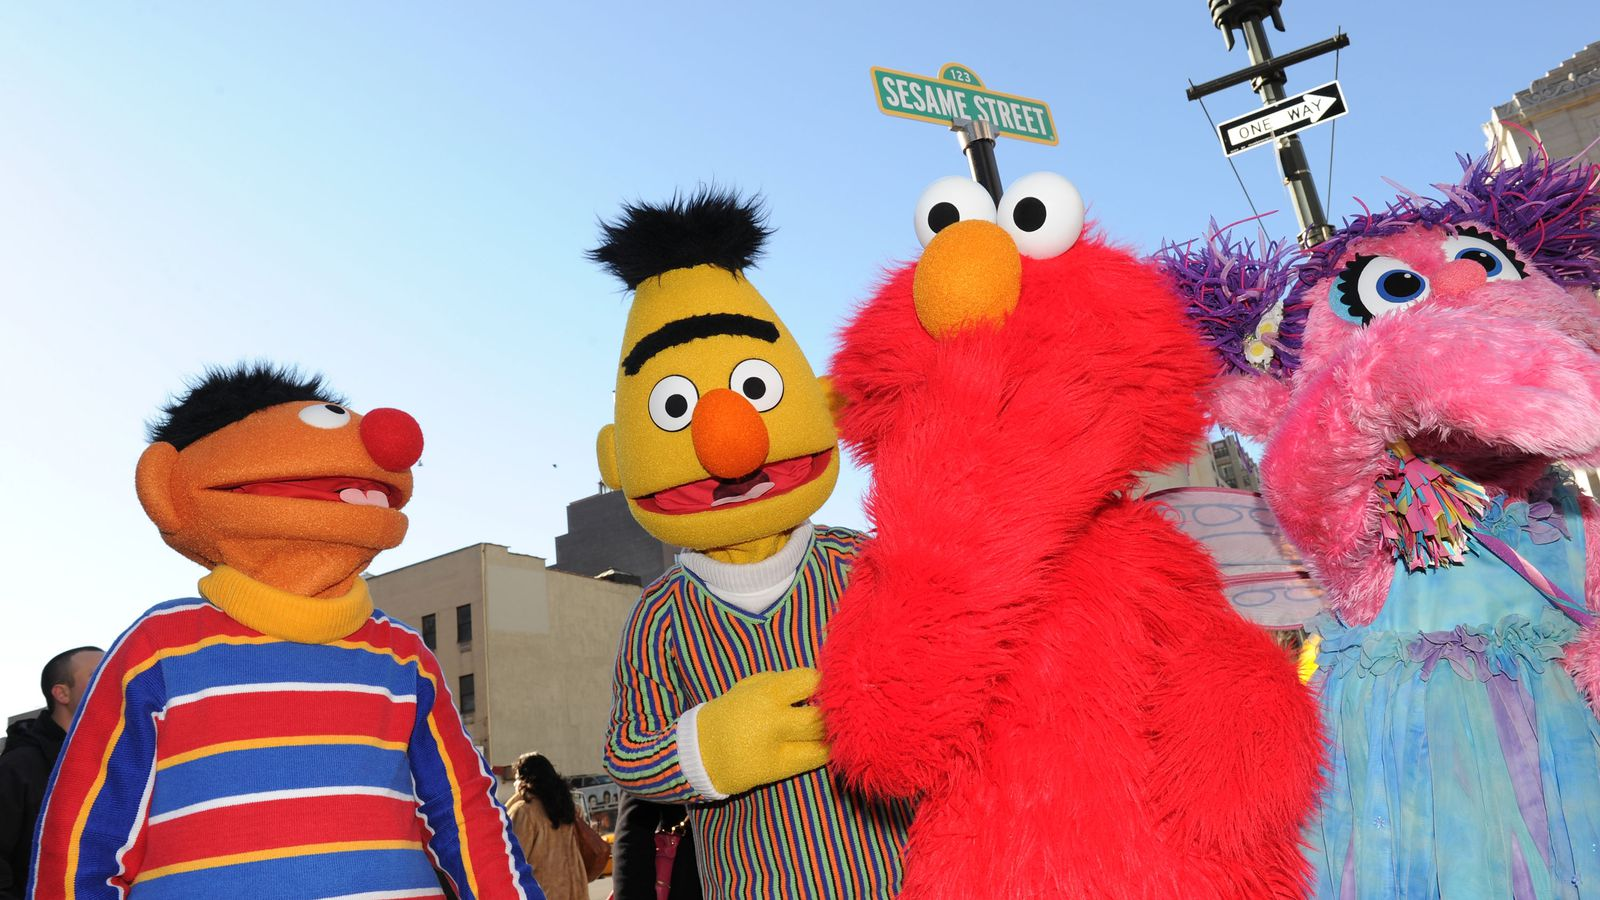 Sesame street officially respond to claims that bert and ernie are gay